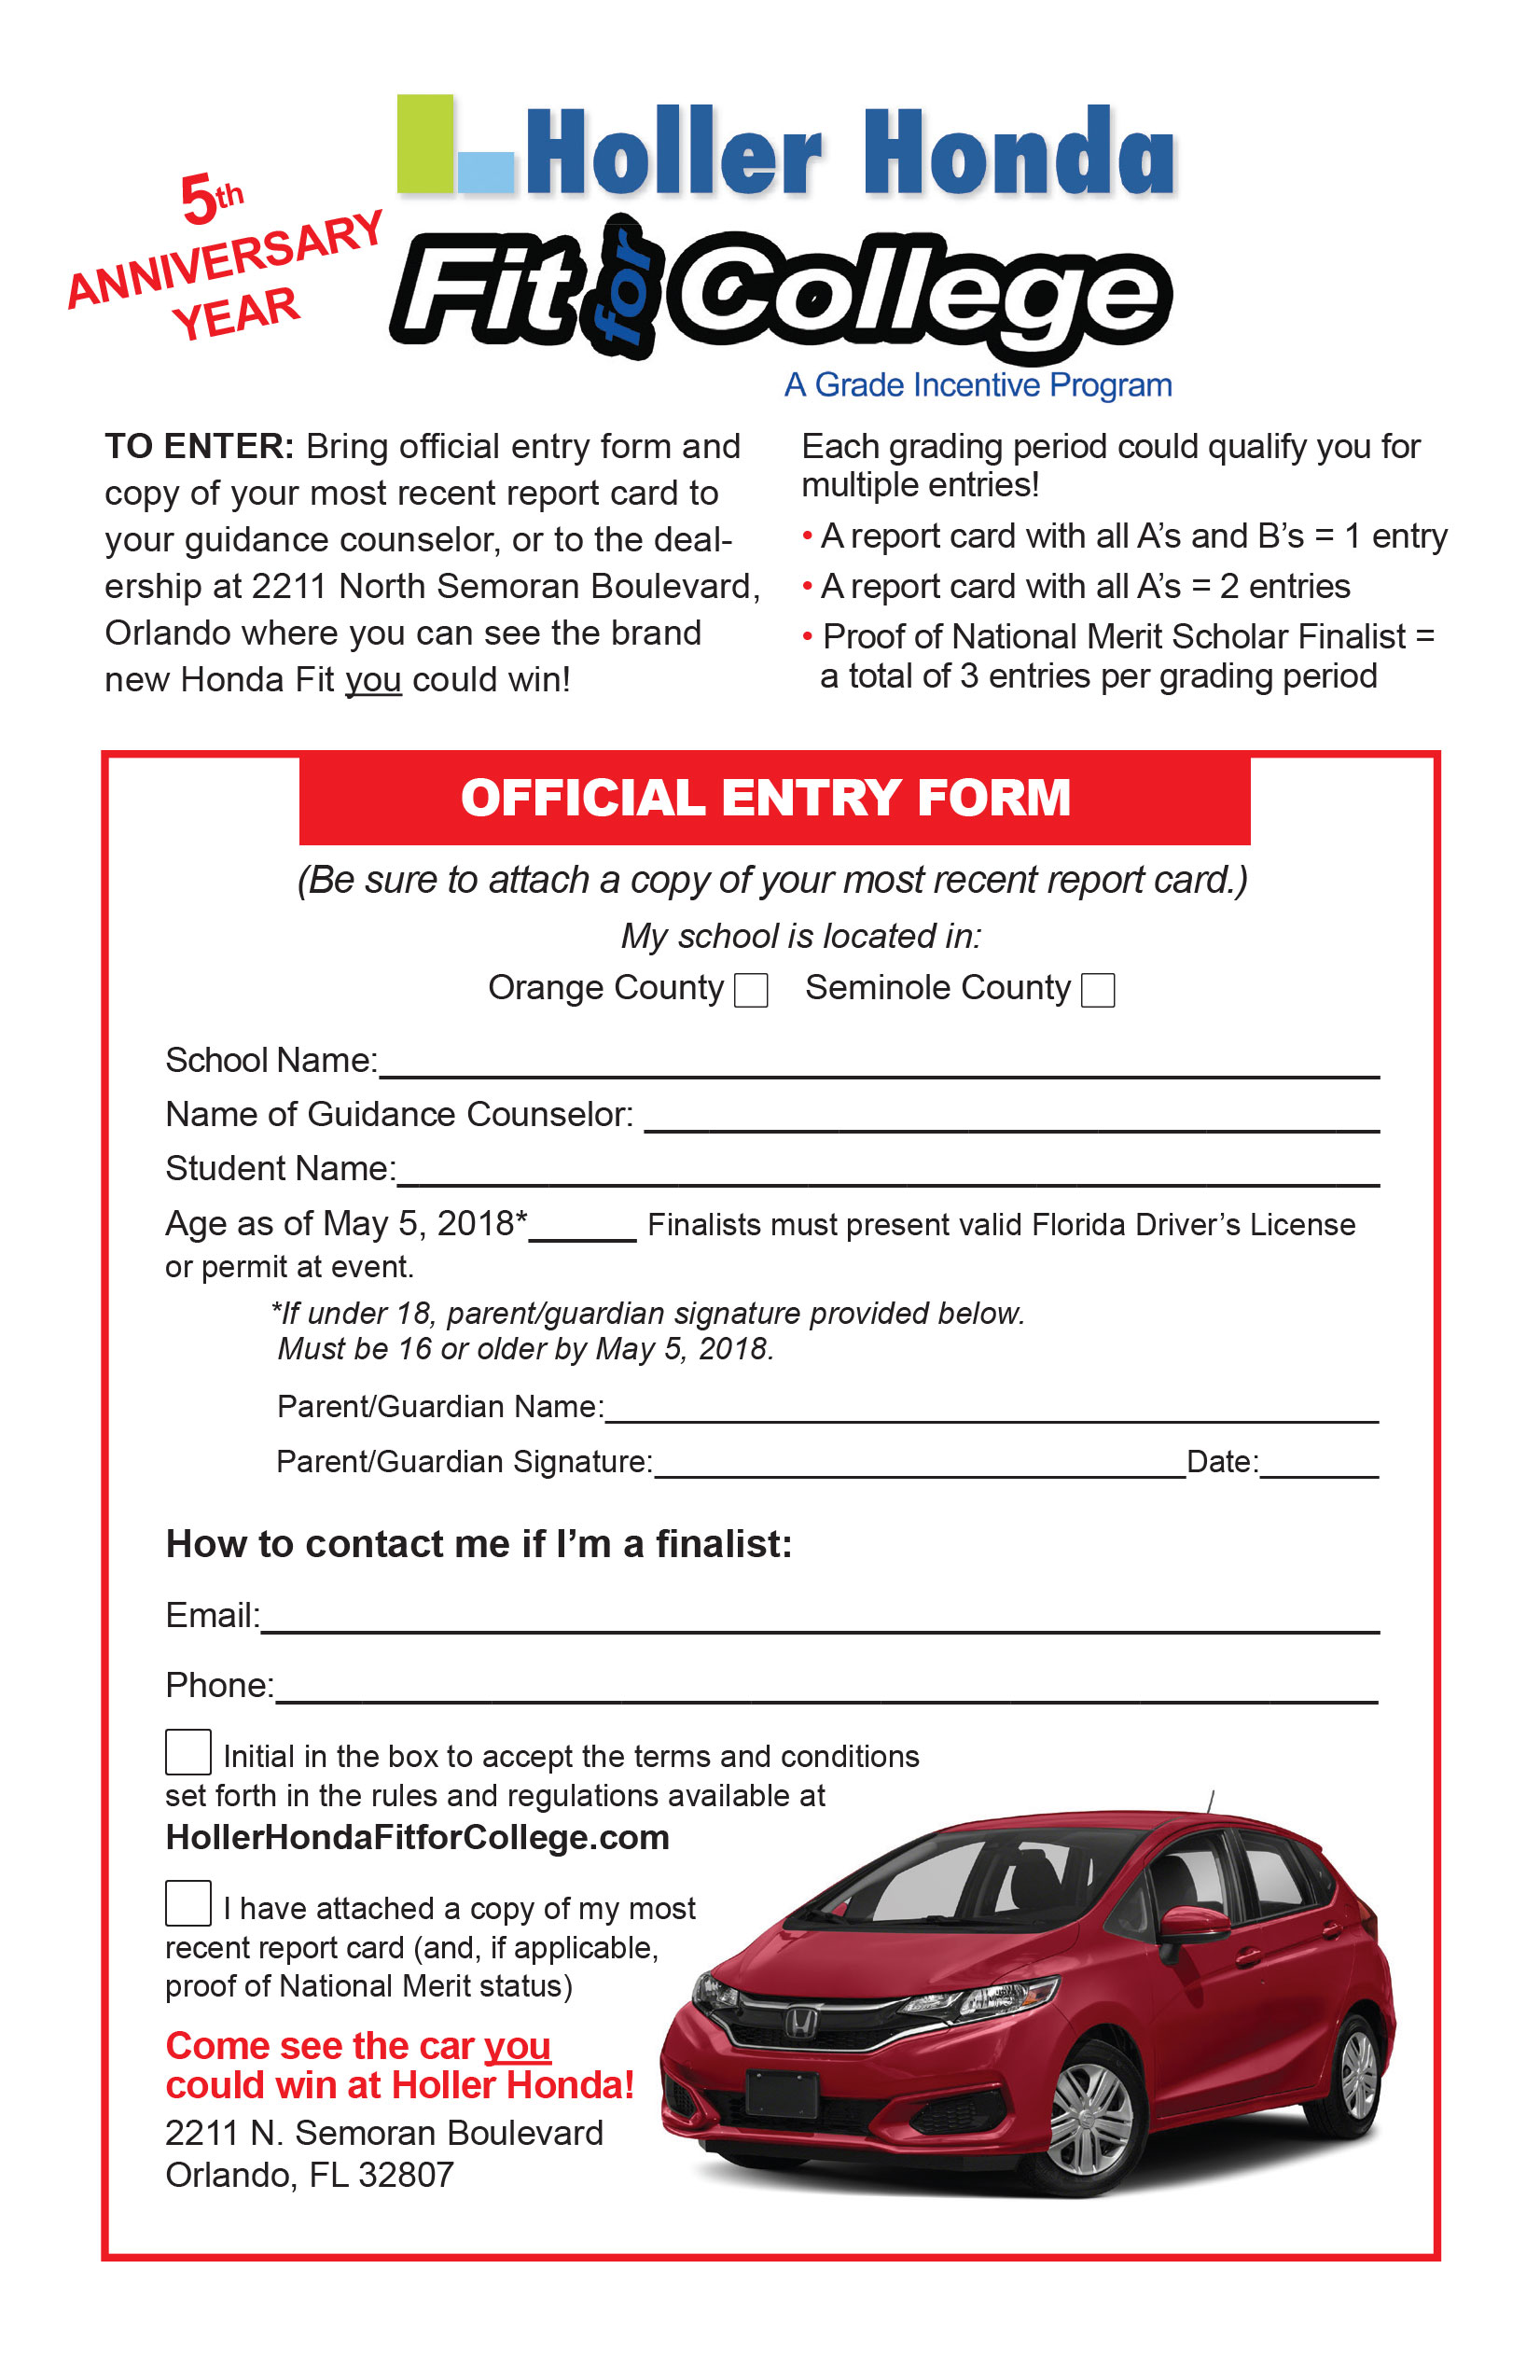 Submission Form - Holler Honda's Fit for College Car Giveaway